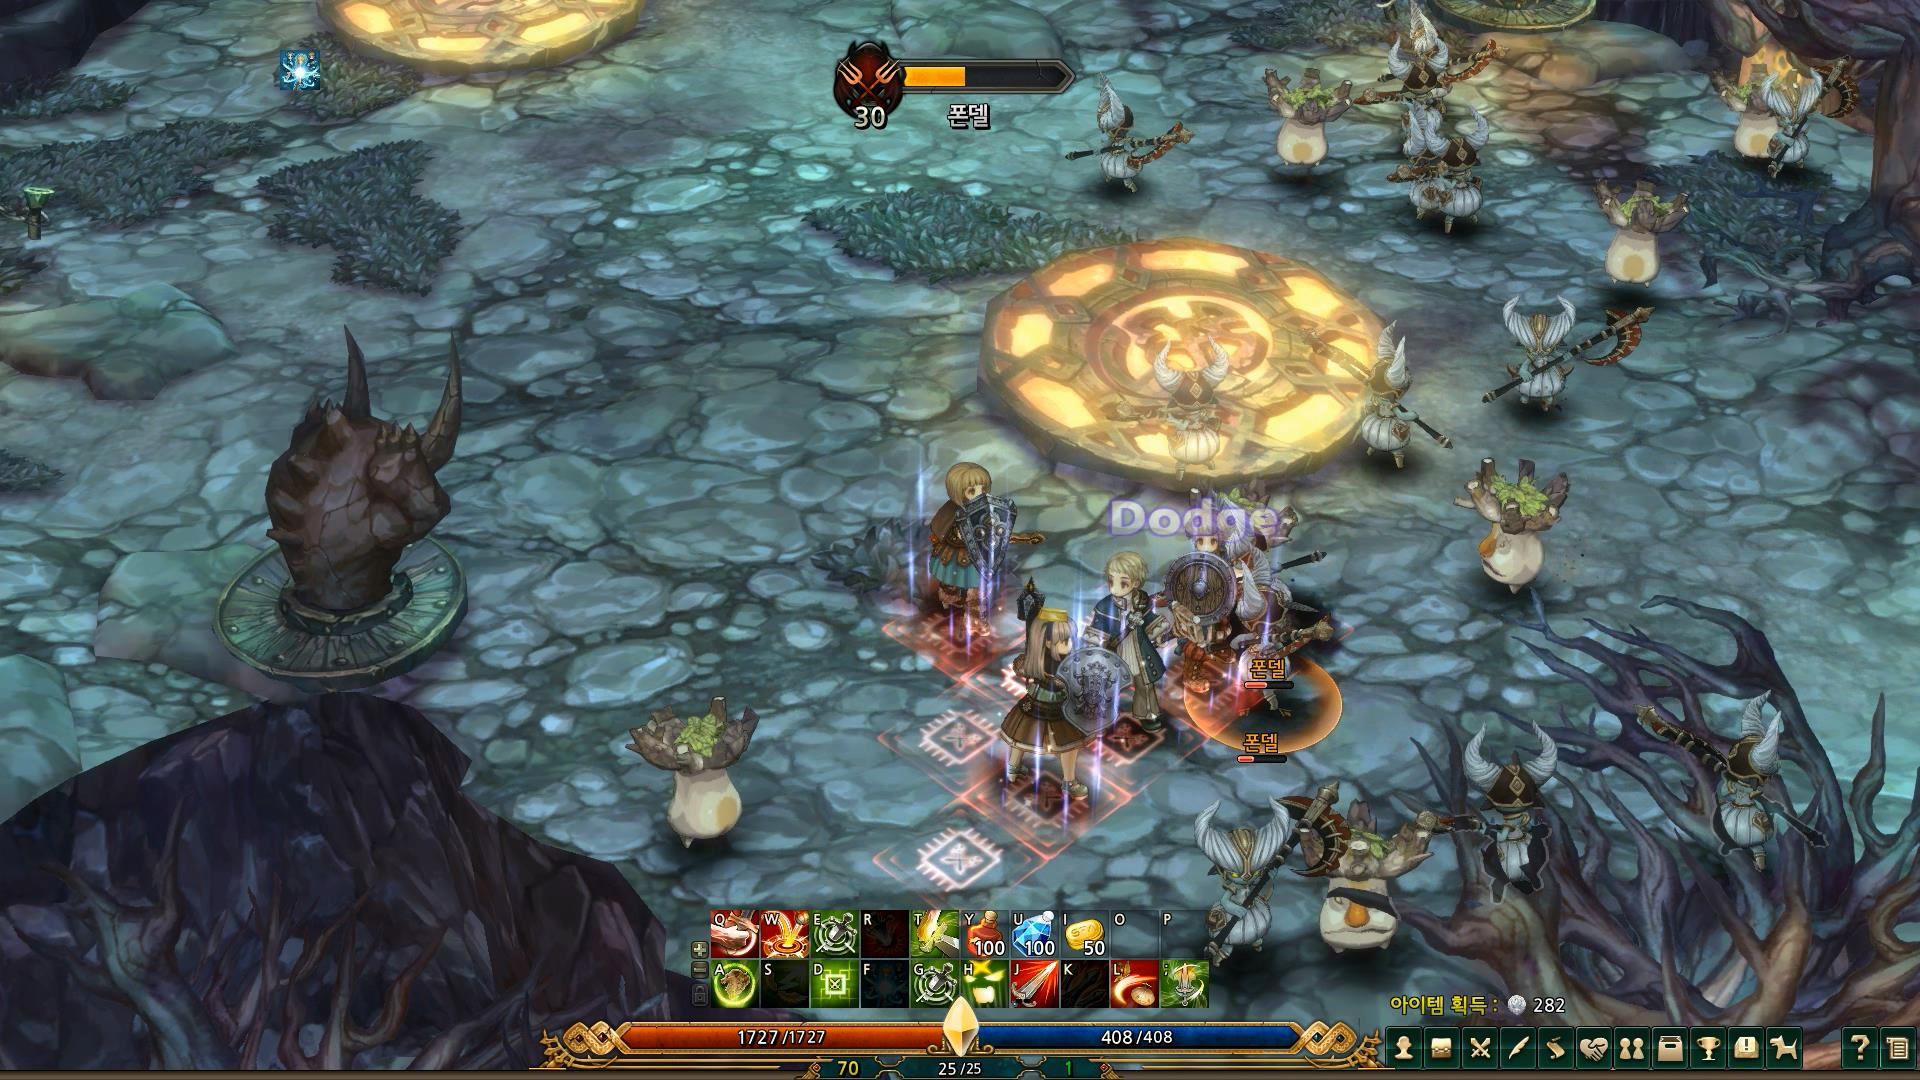 Tree of Savior screenshot 6